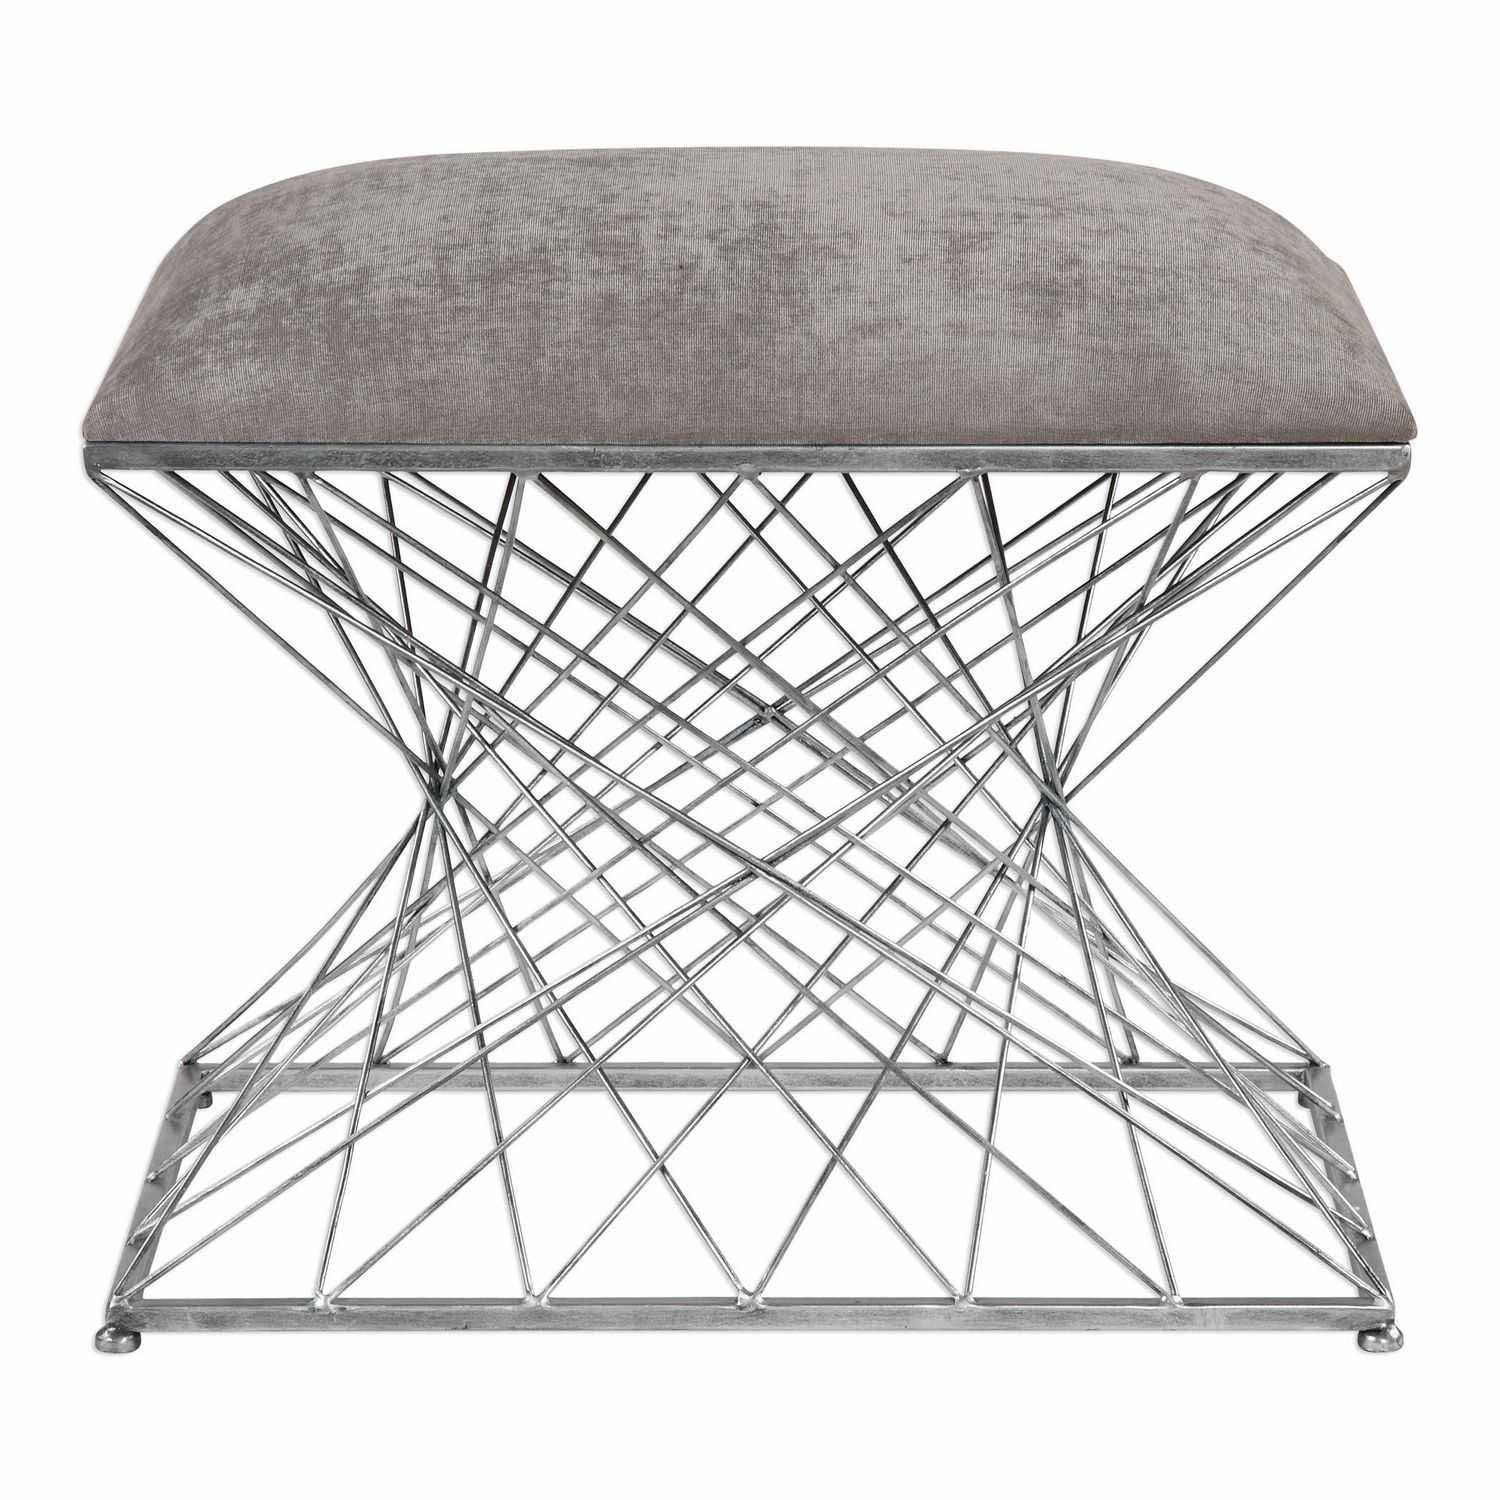 Uttermost Zelia Accent Stool - Silver